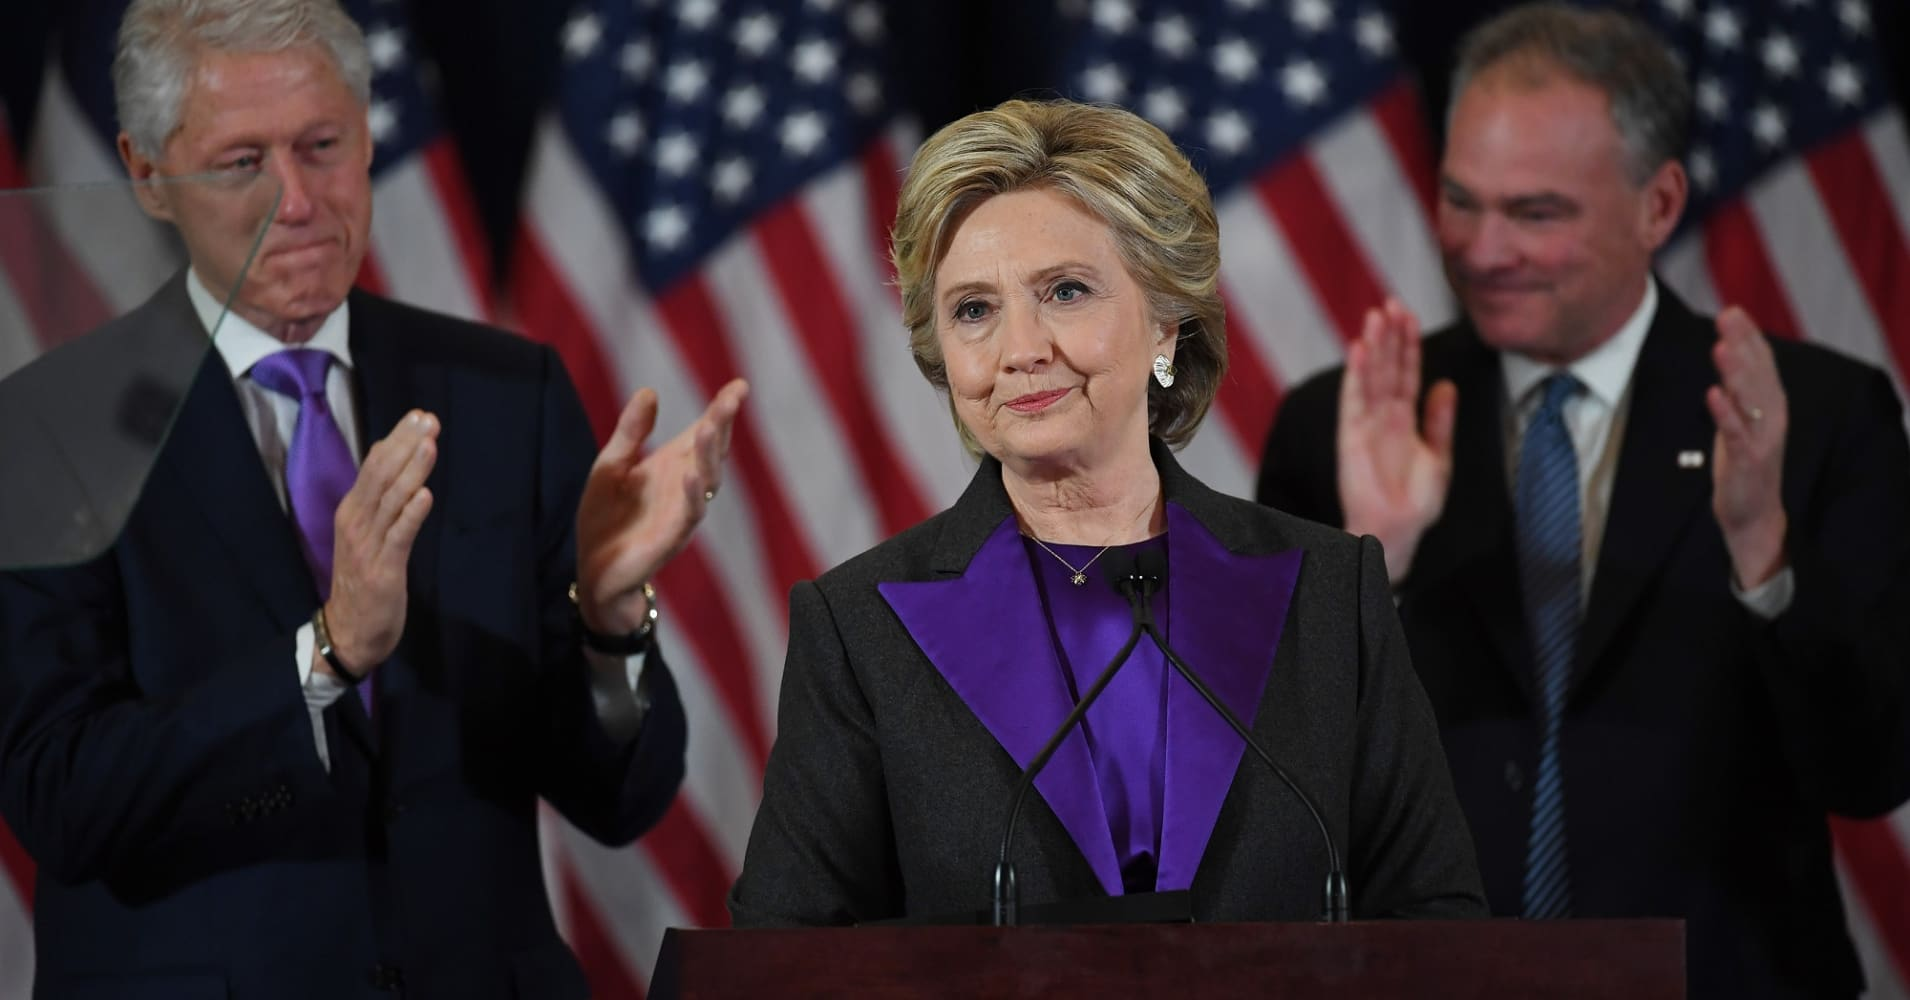 Hillary Clinton Discusses Why She Wears Pantsuits In What